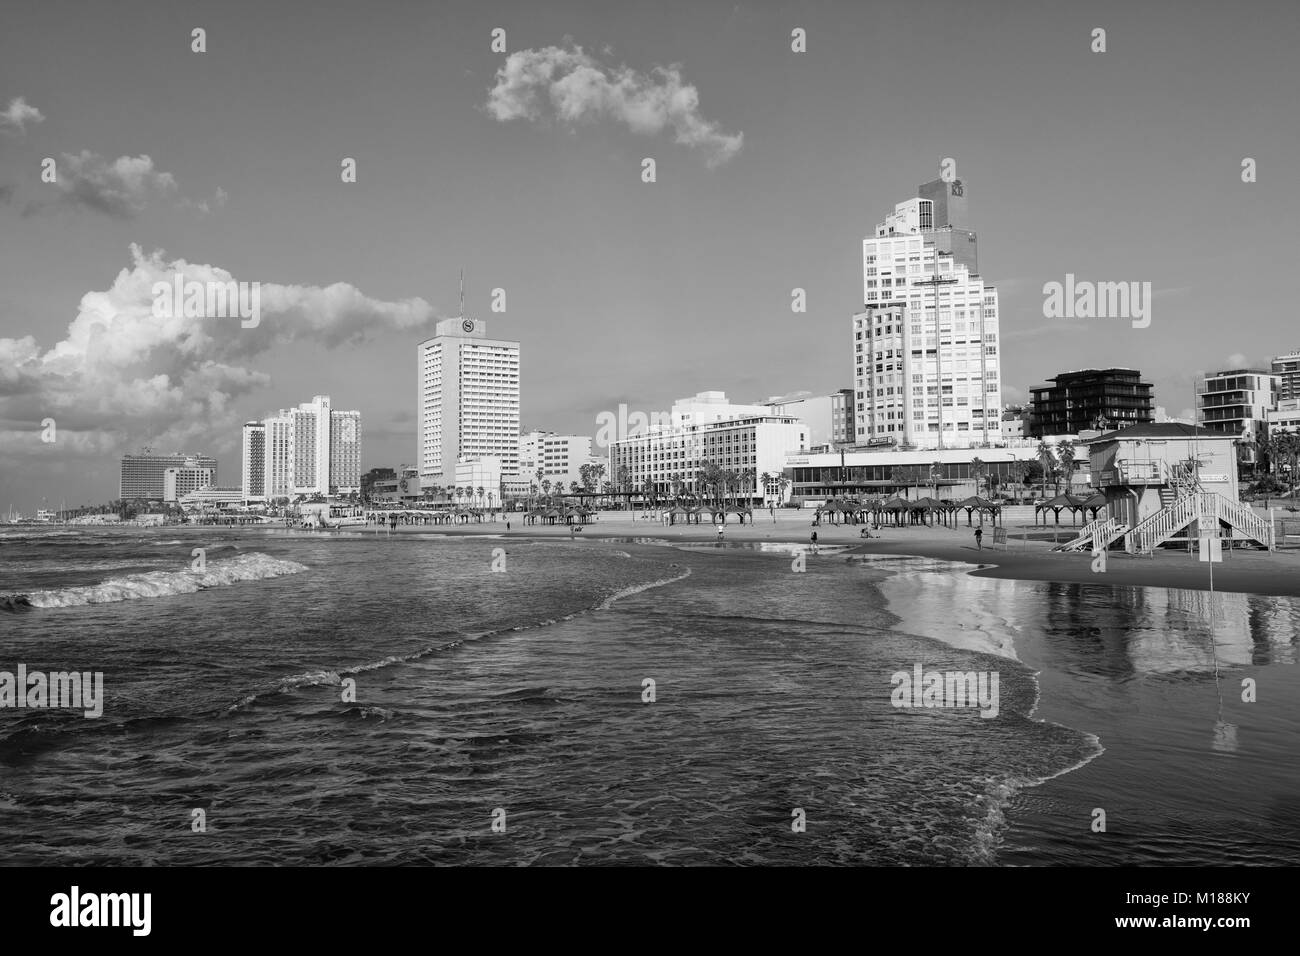 TEL AVIV, ISRAEL - December 26, 2016: Tel-Aviv waterfront: beaches, high-rise buildings and hotels - Stock Image